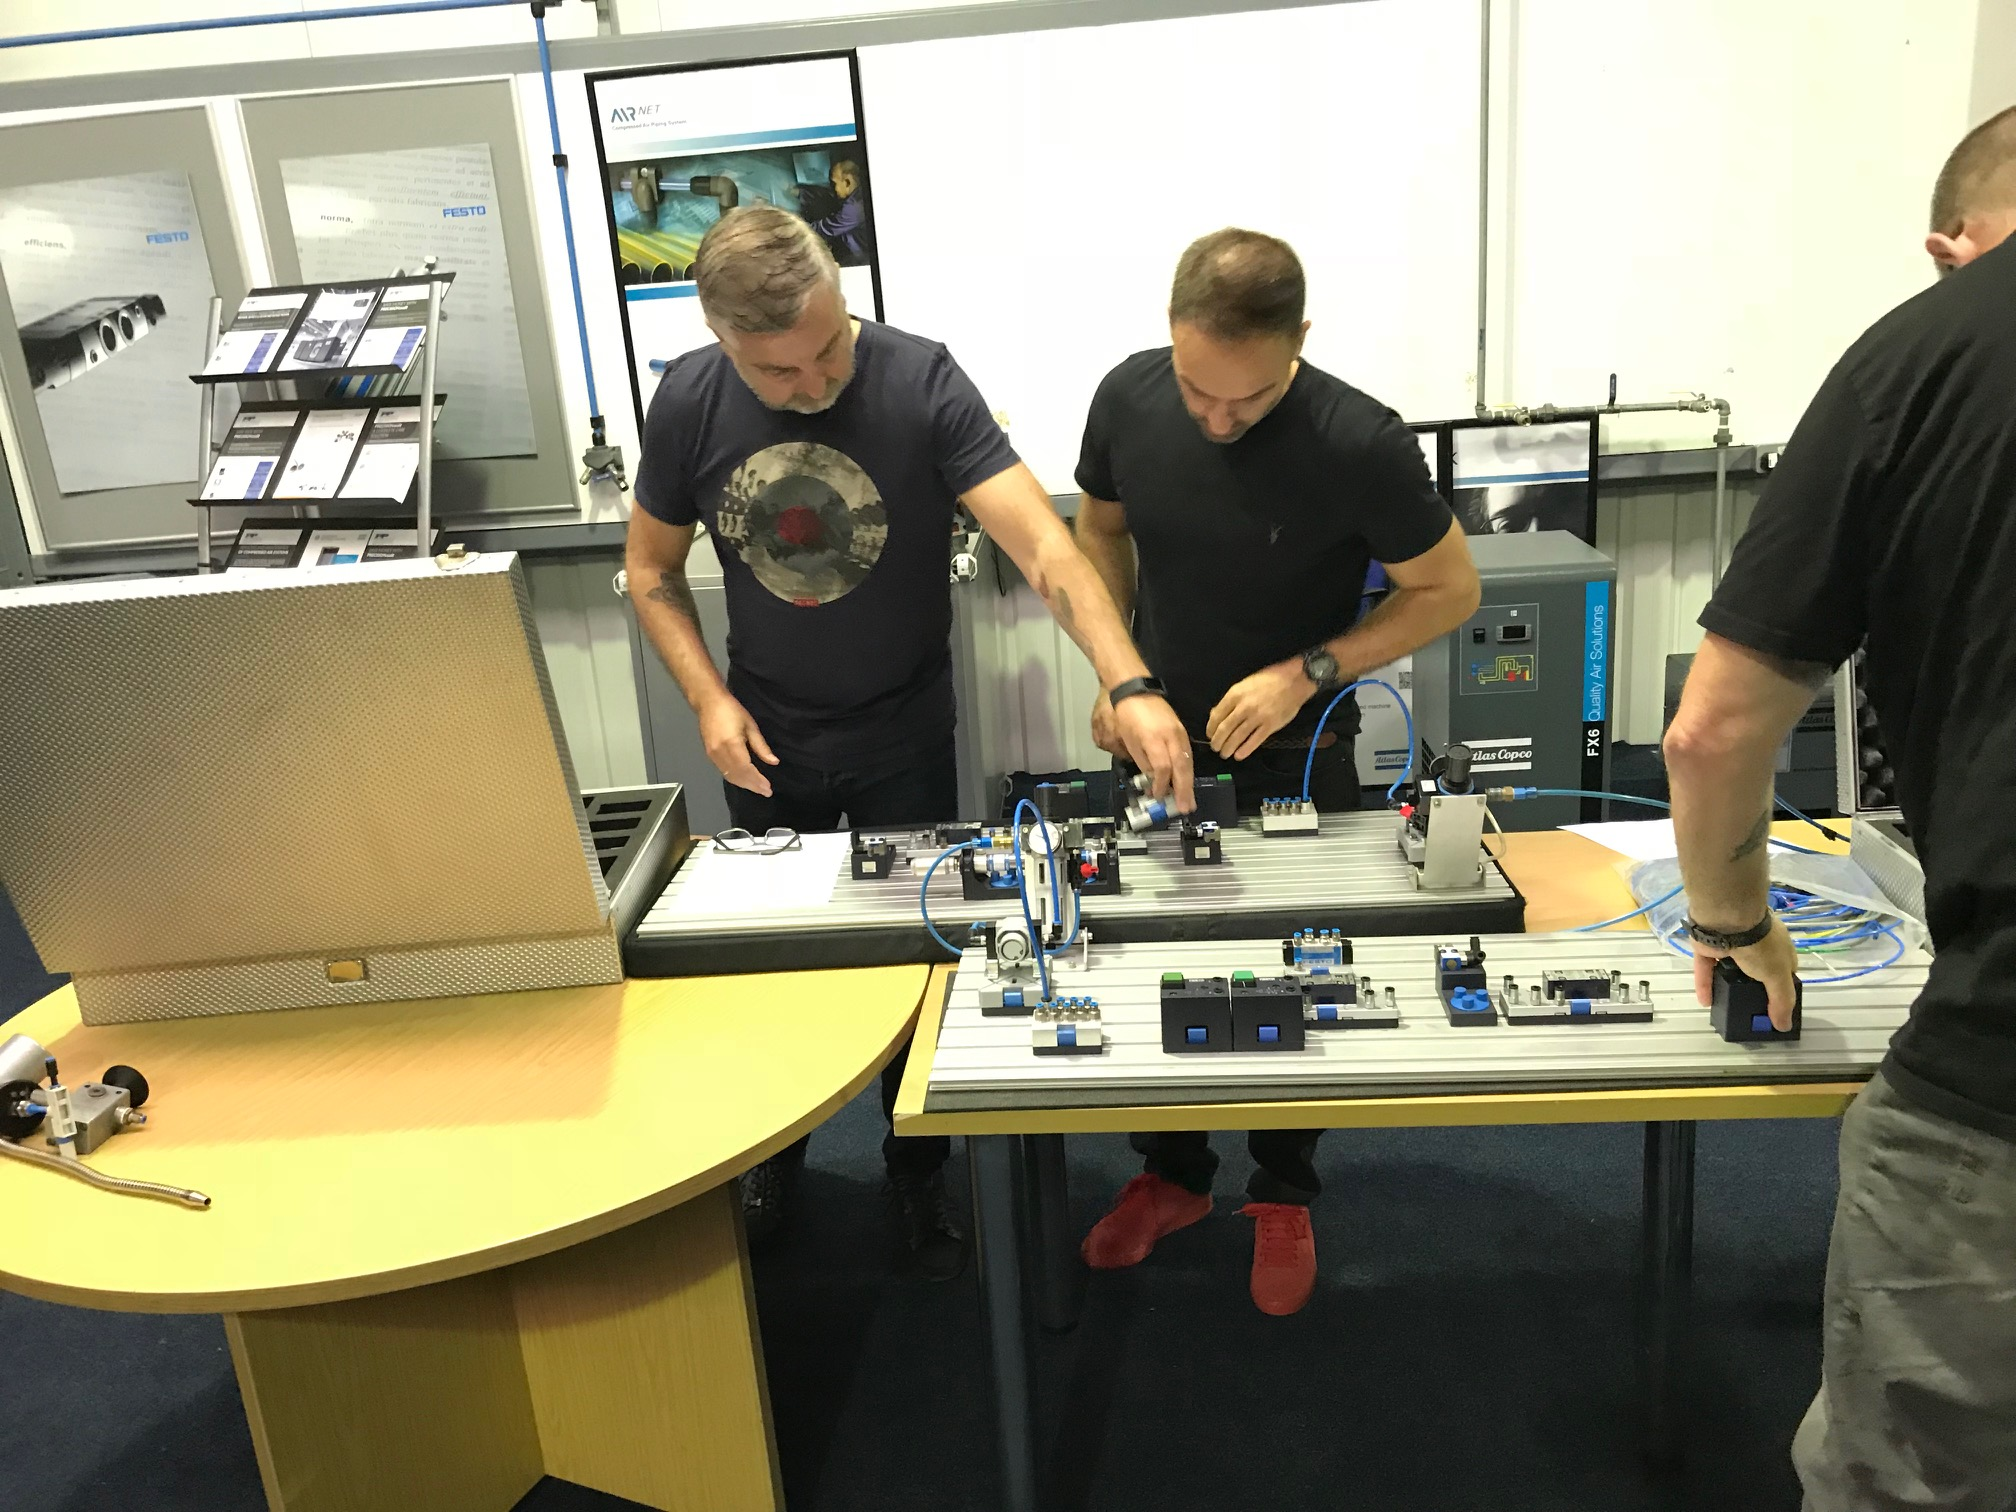 A practical session during the Fundamentals in Pneumatics course hosted by Precision Pneumatics